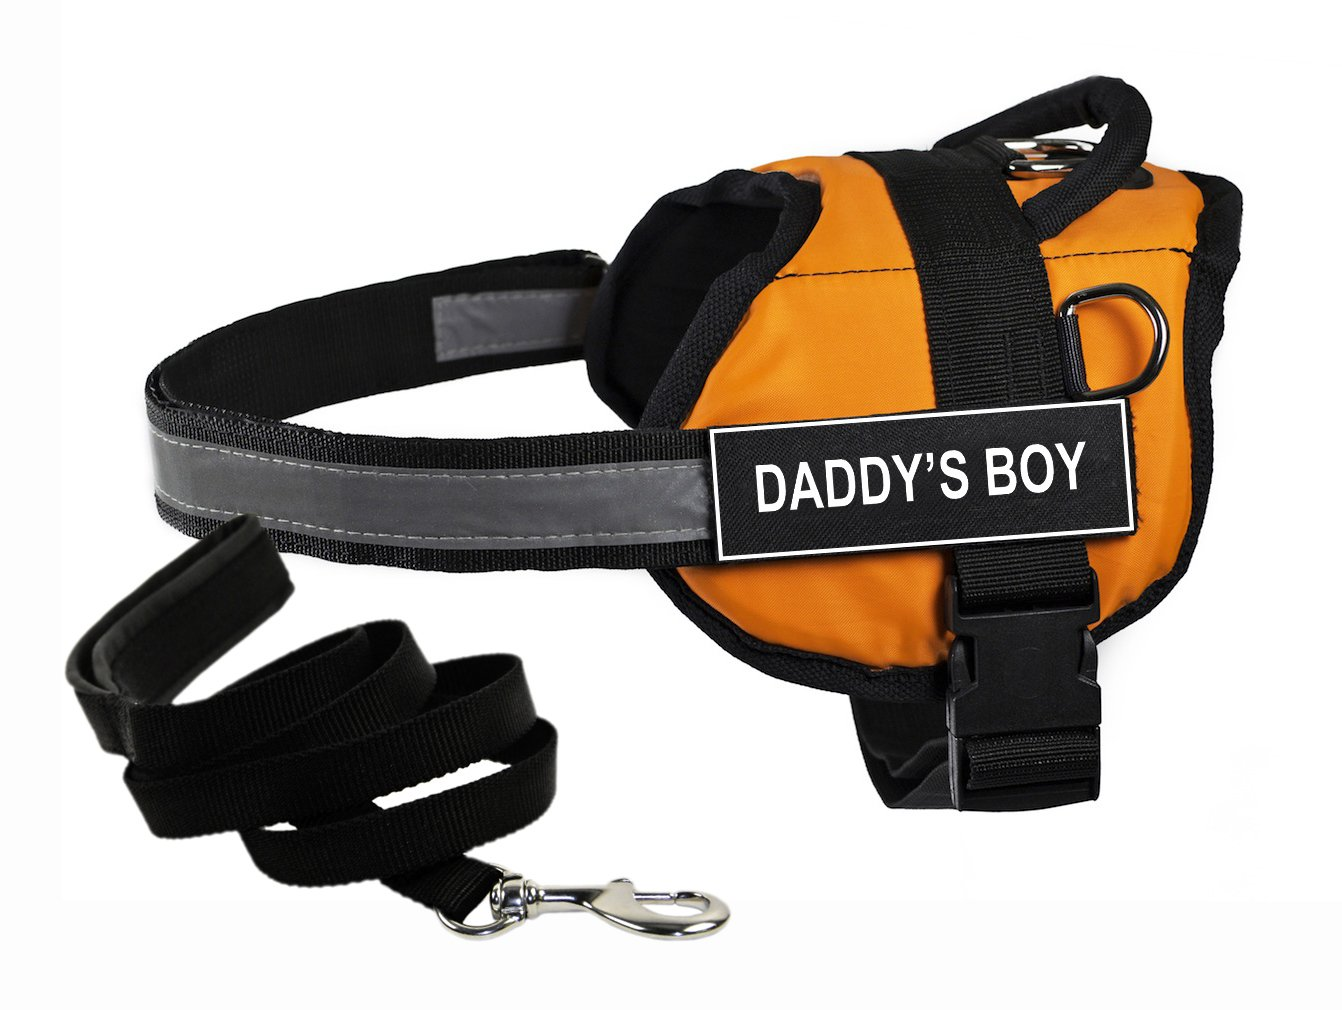 Dean & Tyler's DT Works orange Daddy's BOY  Harness with Chest Padding, X-Small, and Black 6 ft Padded Puppy Leash.